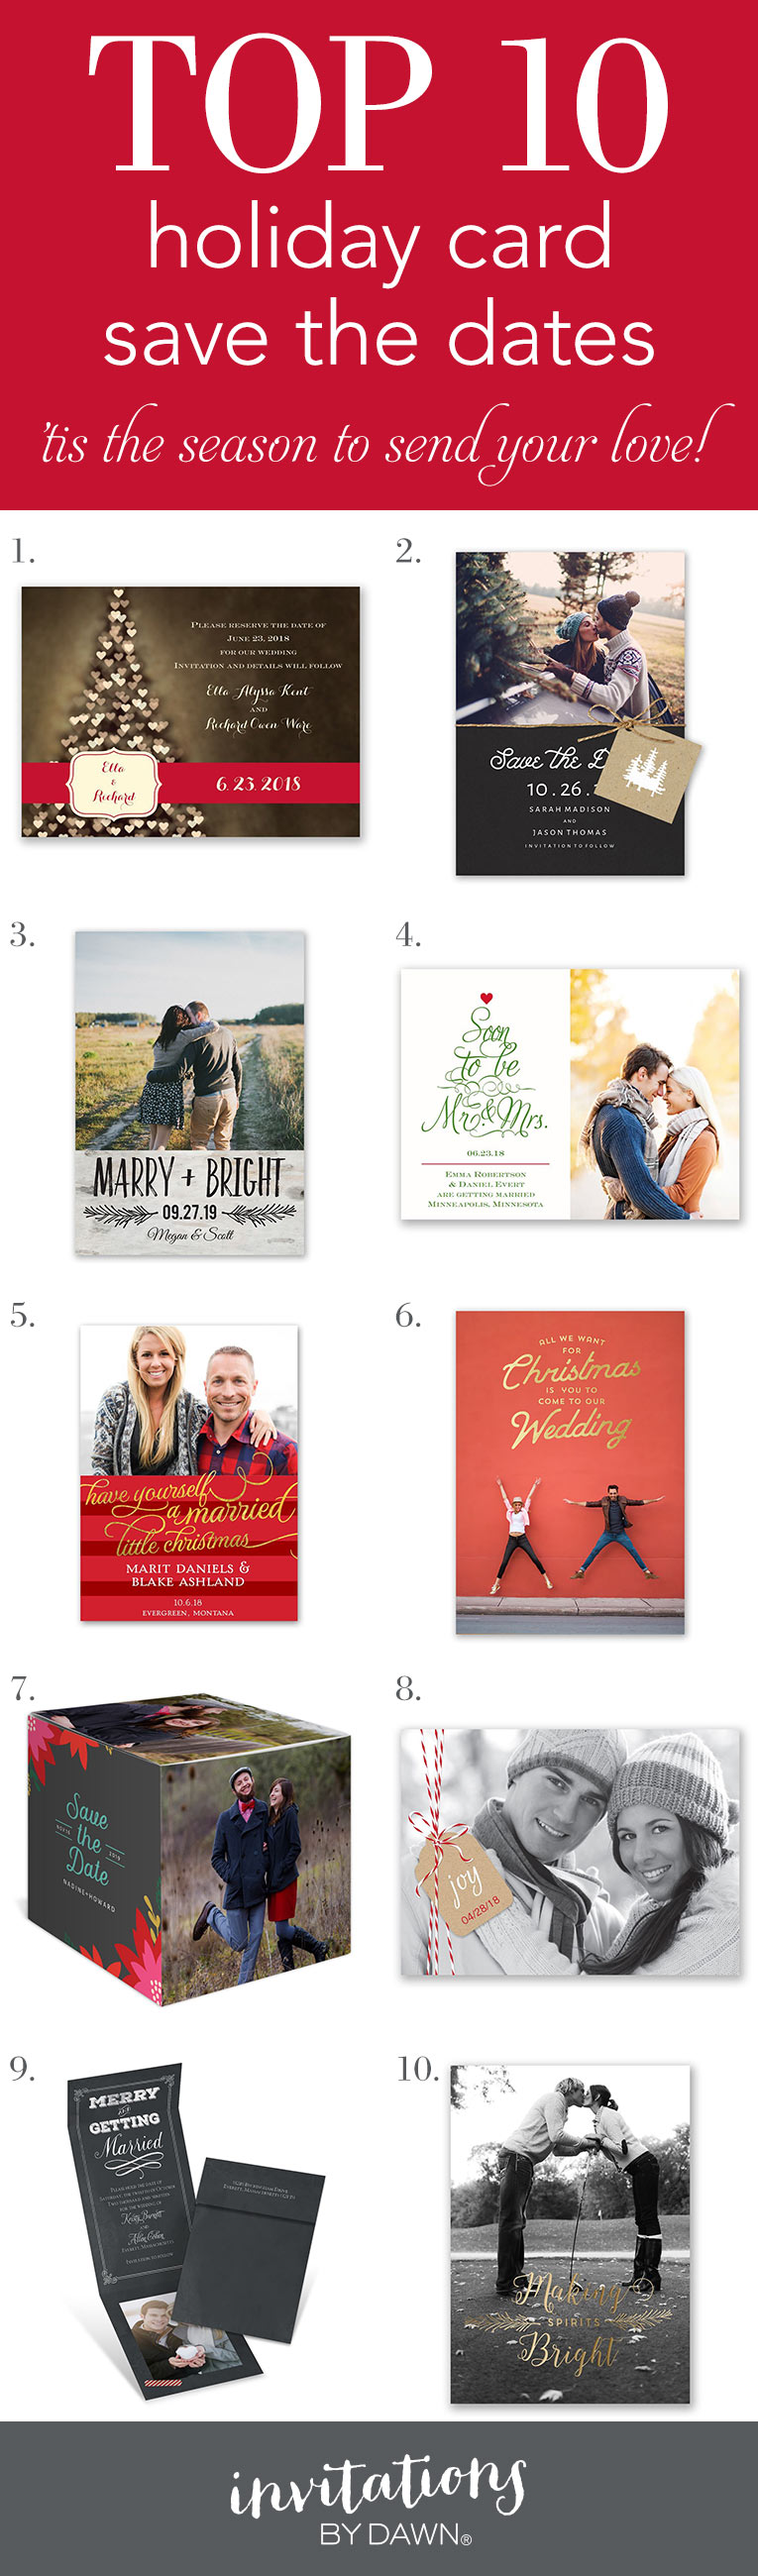 Top 10 Holiday Card Save the Dates   Pinterest   Holidays and Weddings